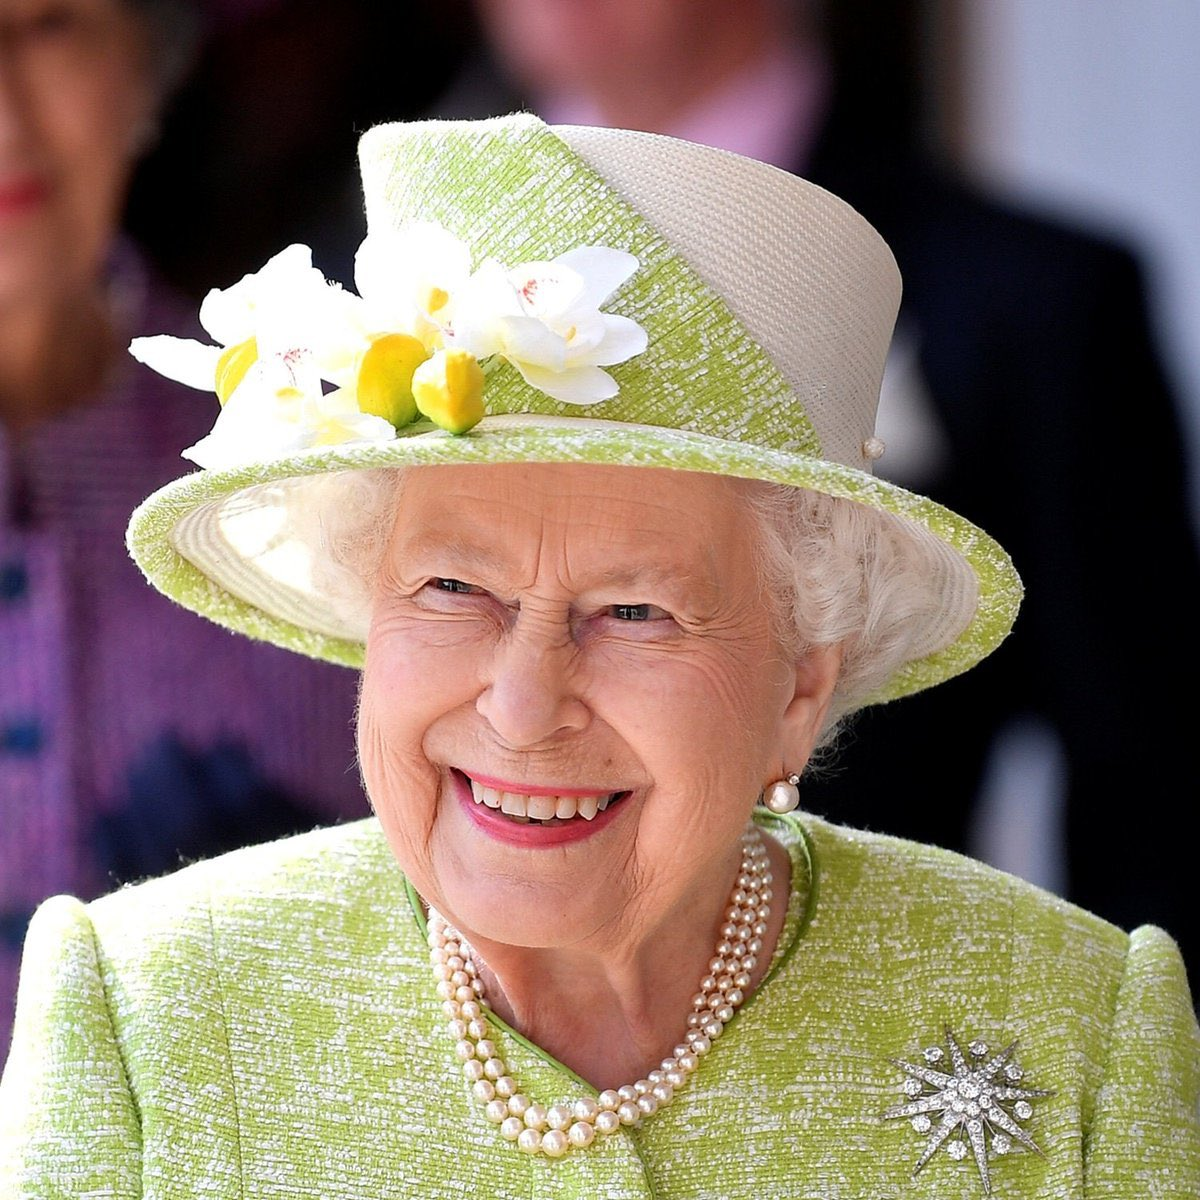 Happy Birthday to Her Majesty The Queen who turns 94 today! #QueensBirthday #HappyBirthdayHerMajesty